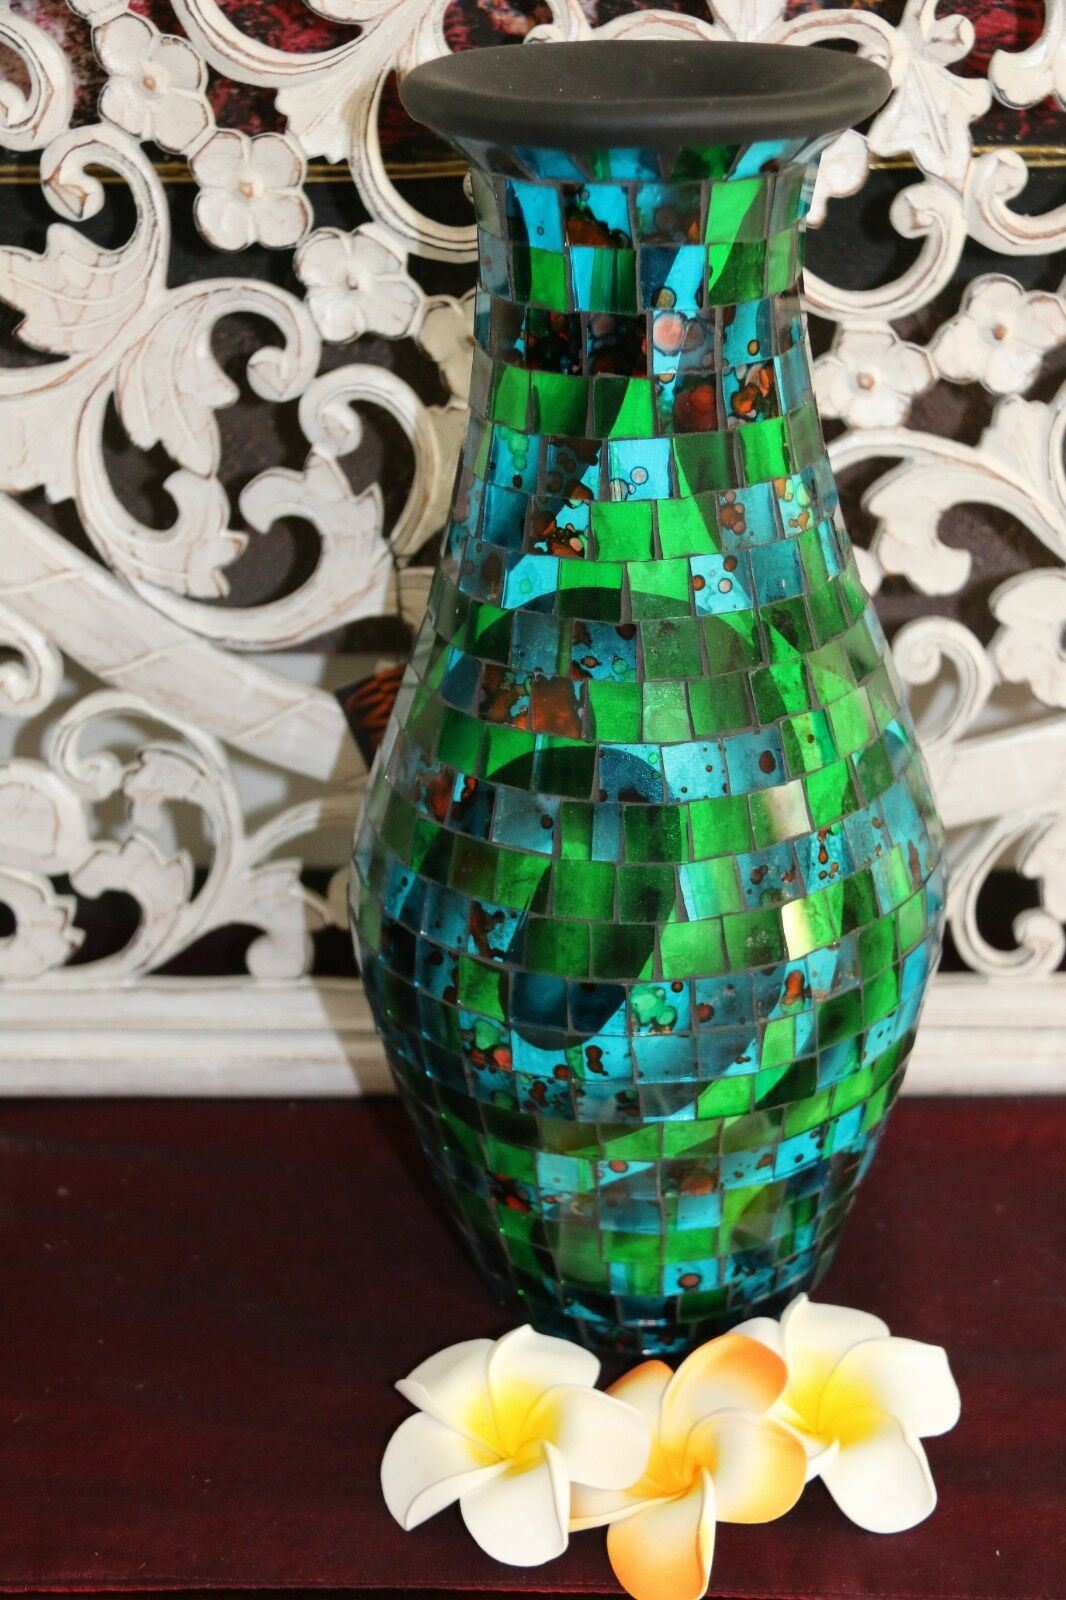 NEW Balinese Mosaic Decorative Vase - 2 Sizes!!  Bali Mosaic Vase Blue/Green